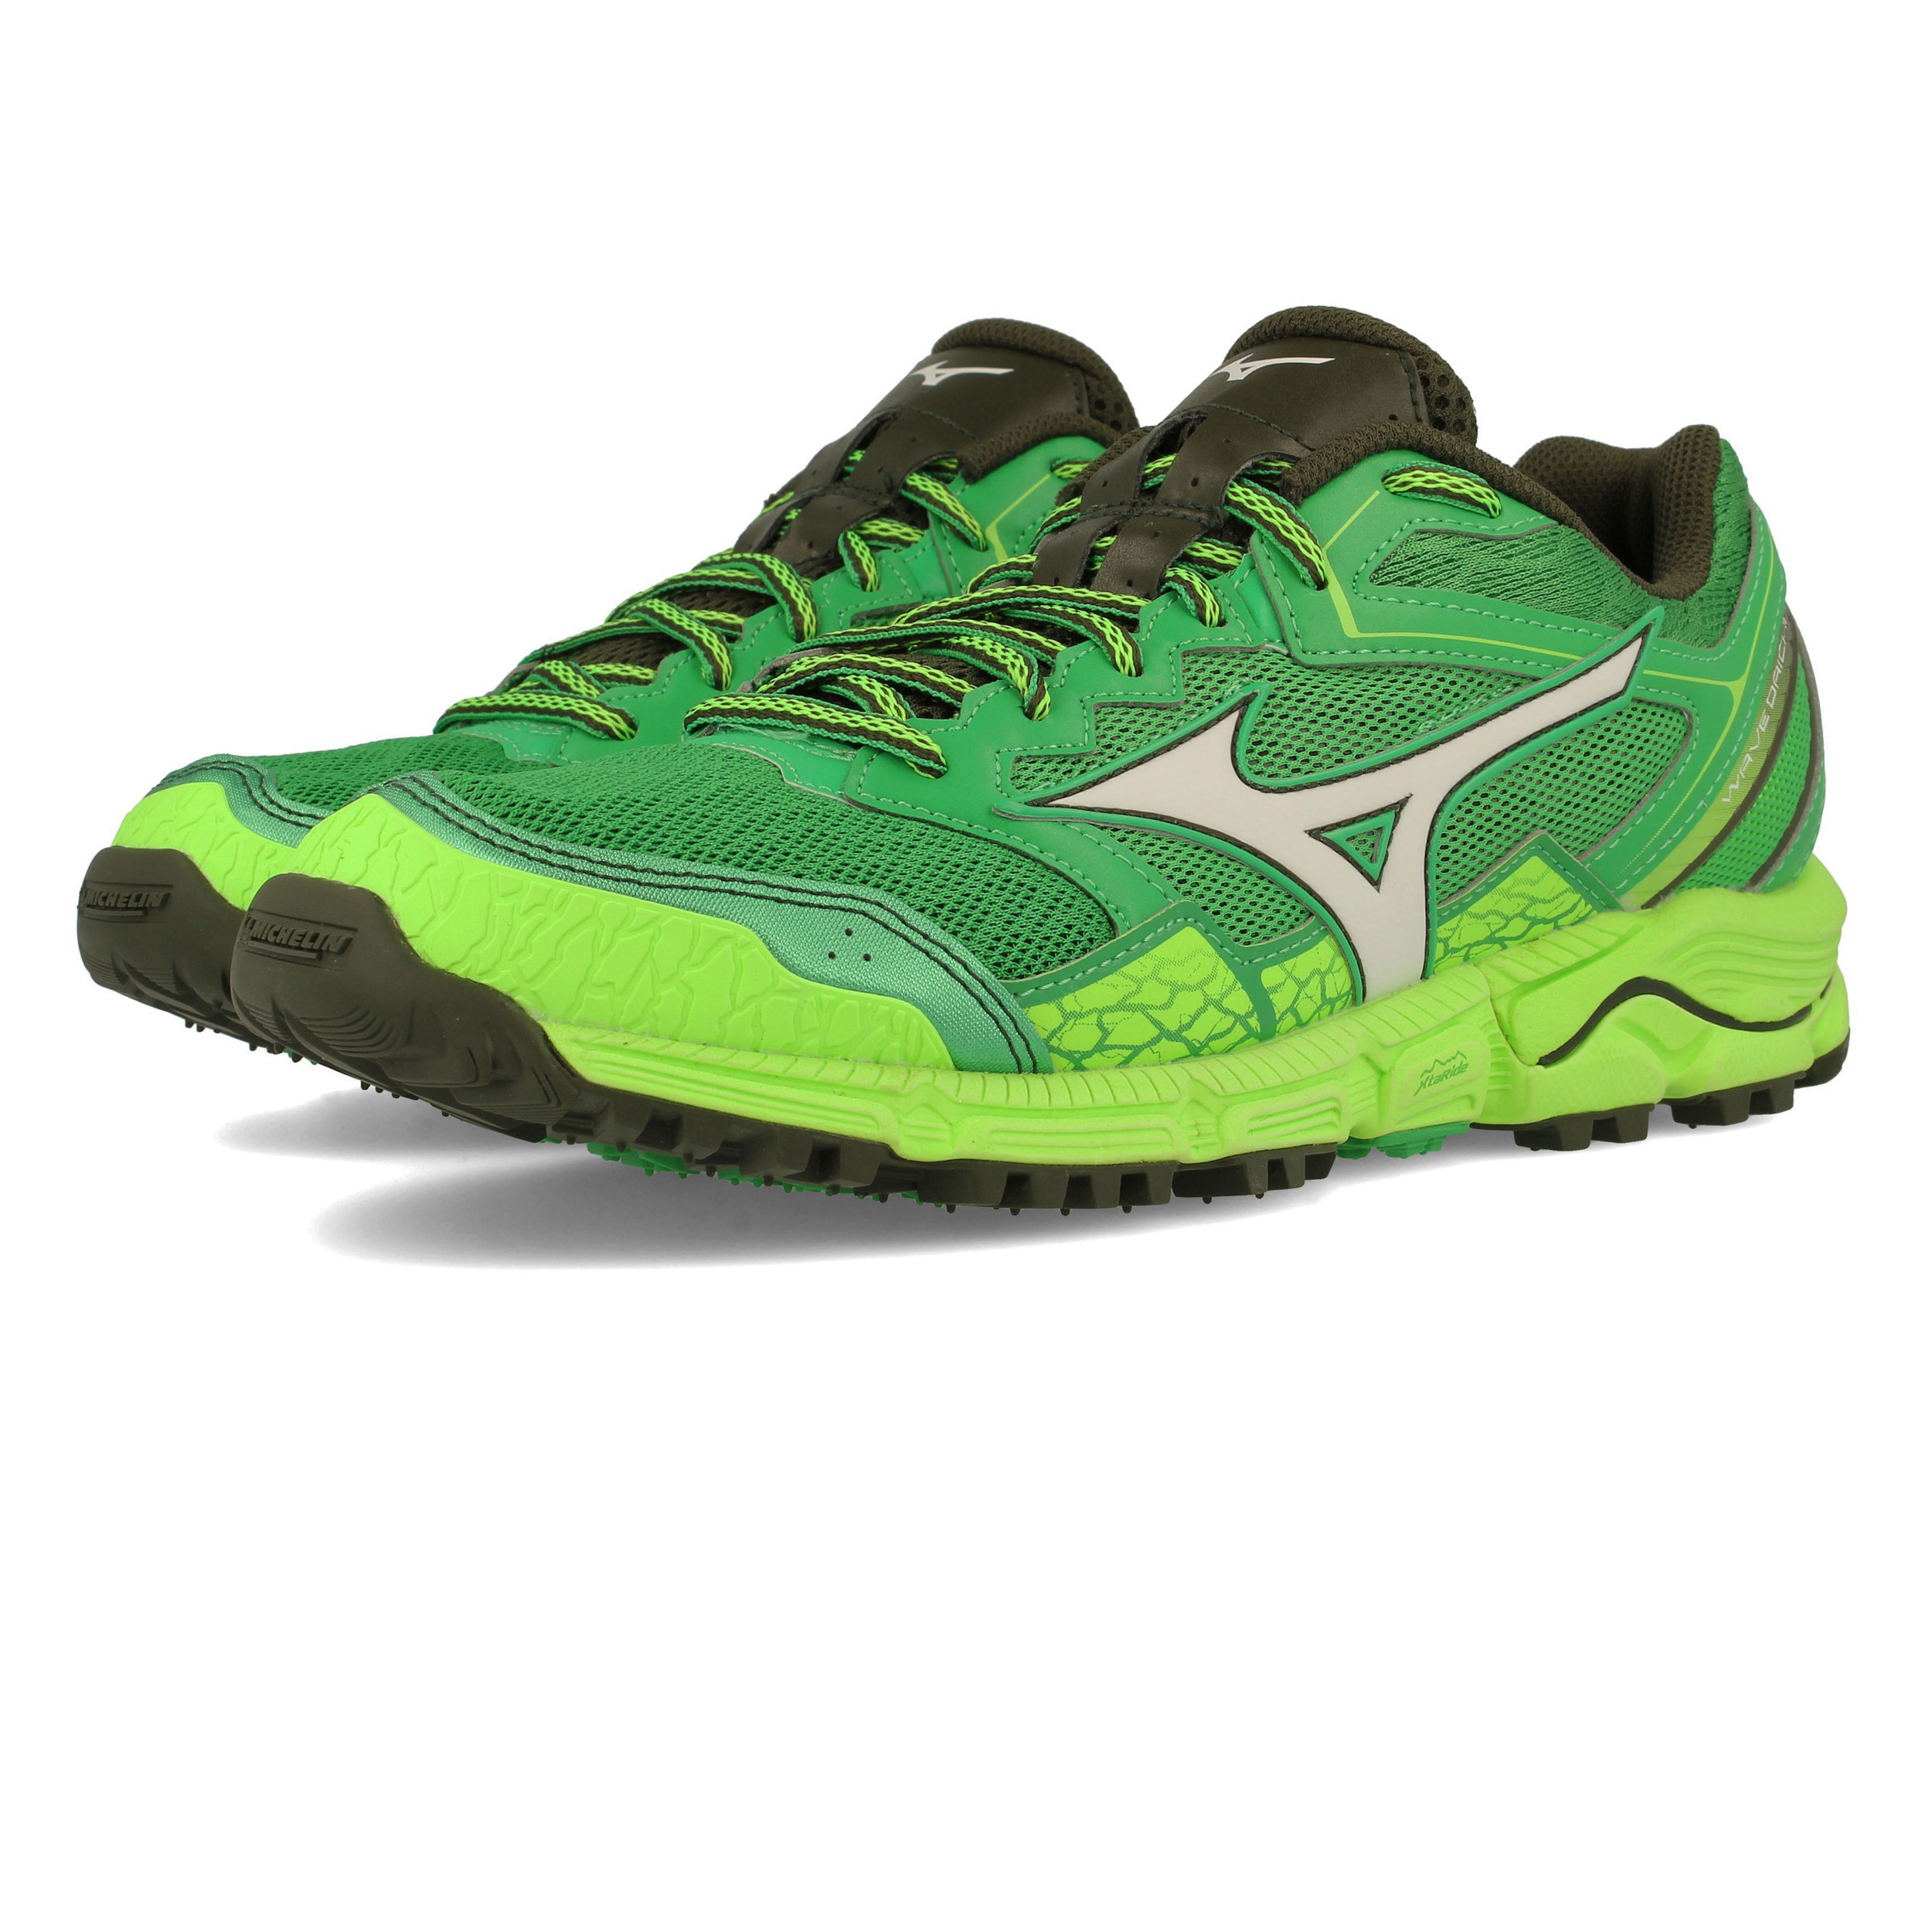 new styles 31bb3 76243 Details about Mizuno Mens Wave Daichi 3 Trail Running Shoes Trainers  Sneakers Green Sports